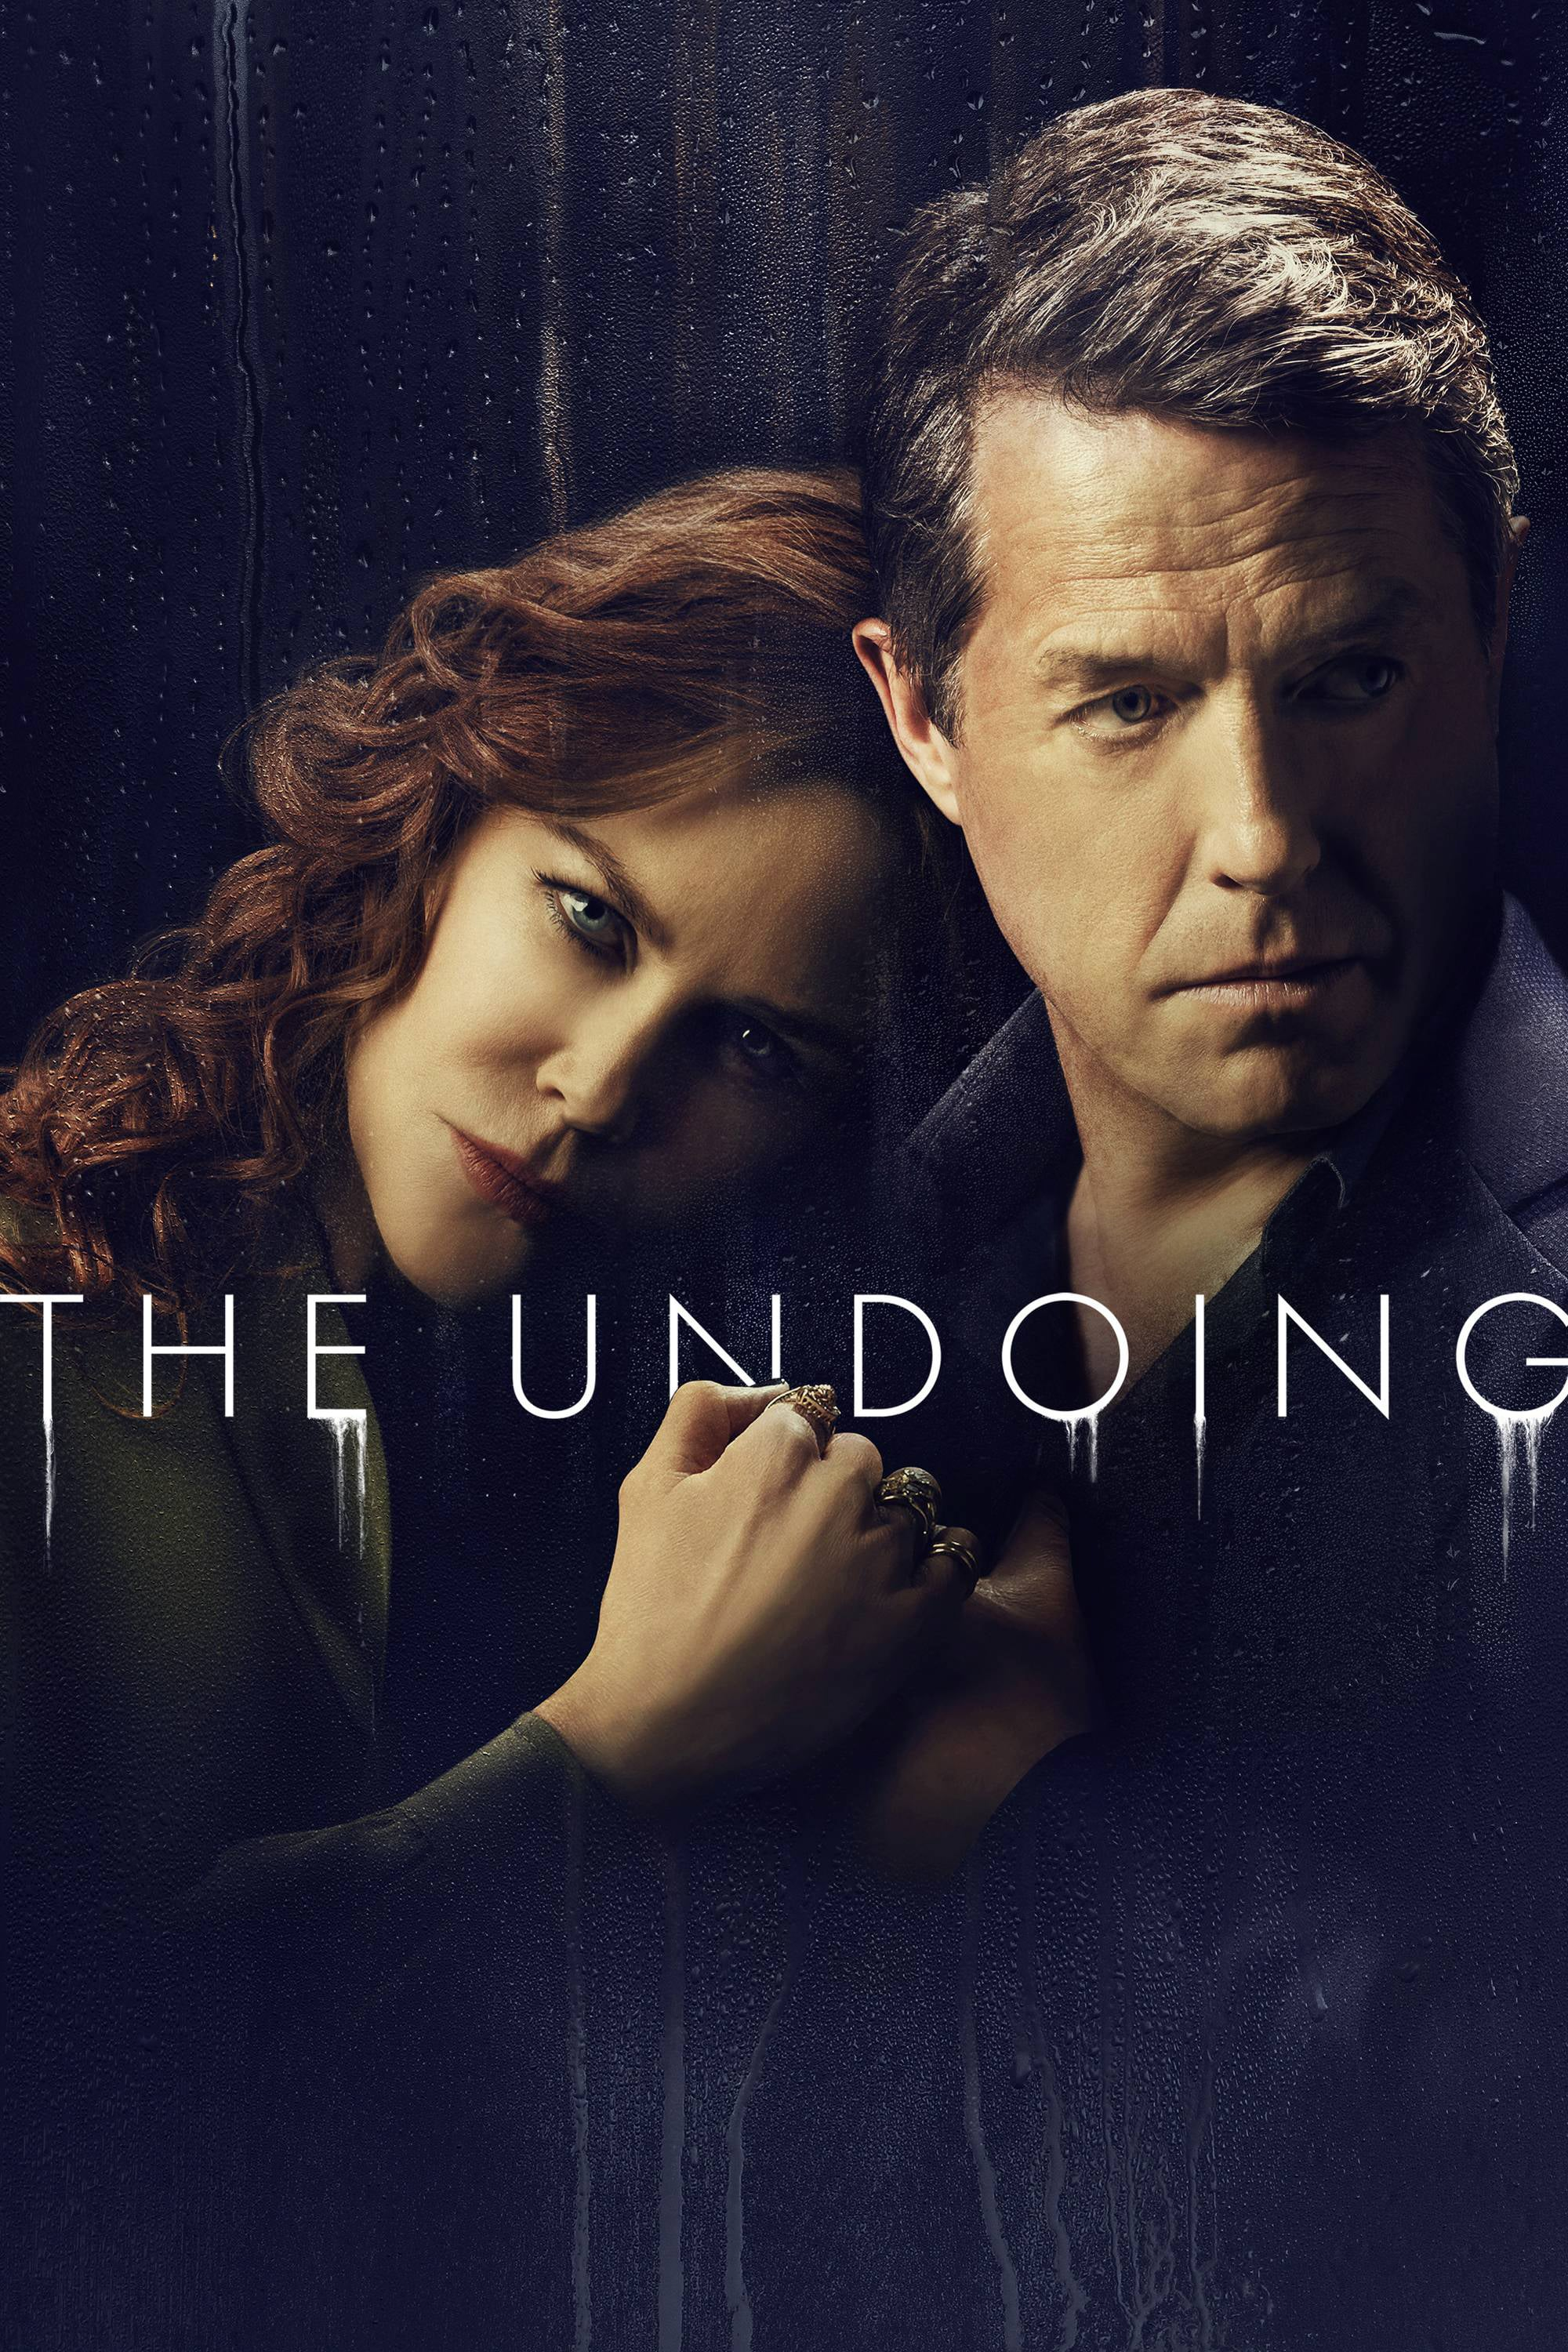 The Undoing rating